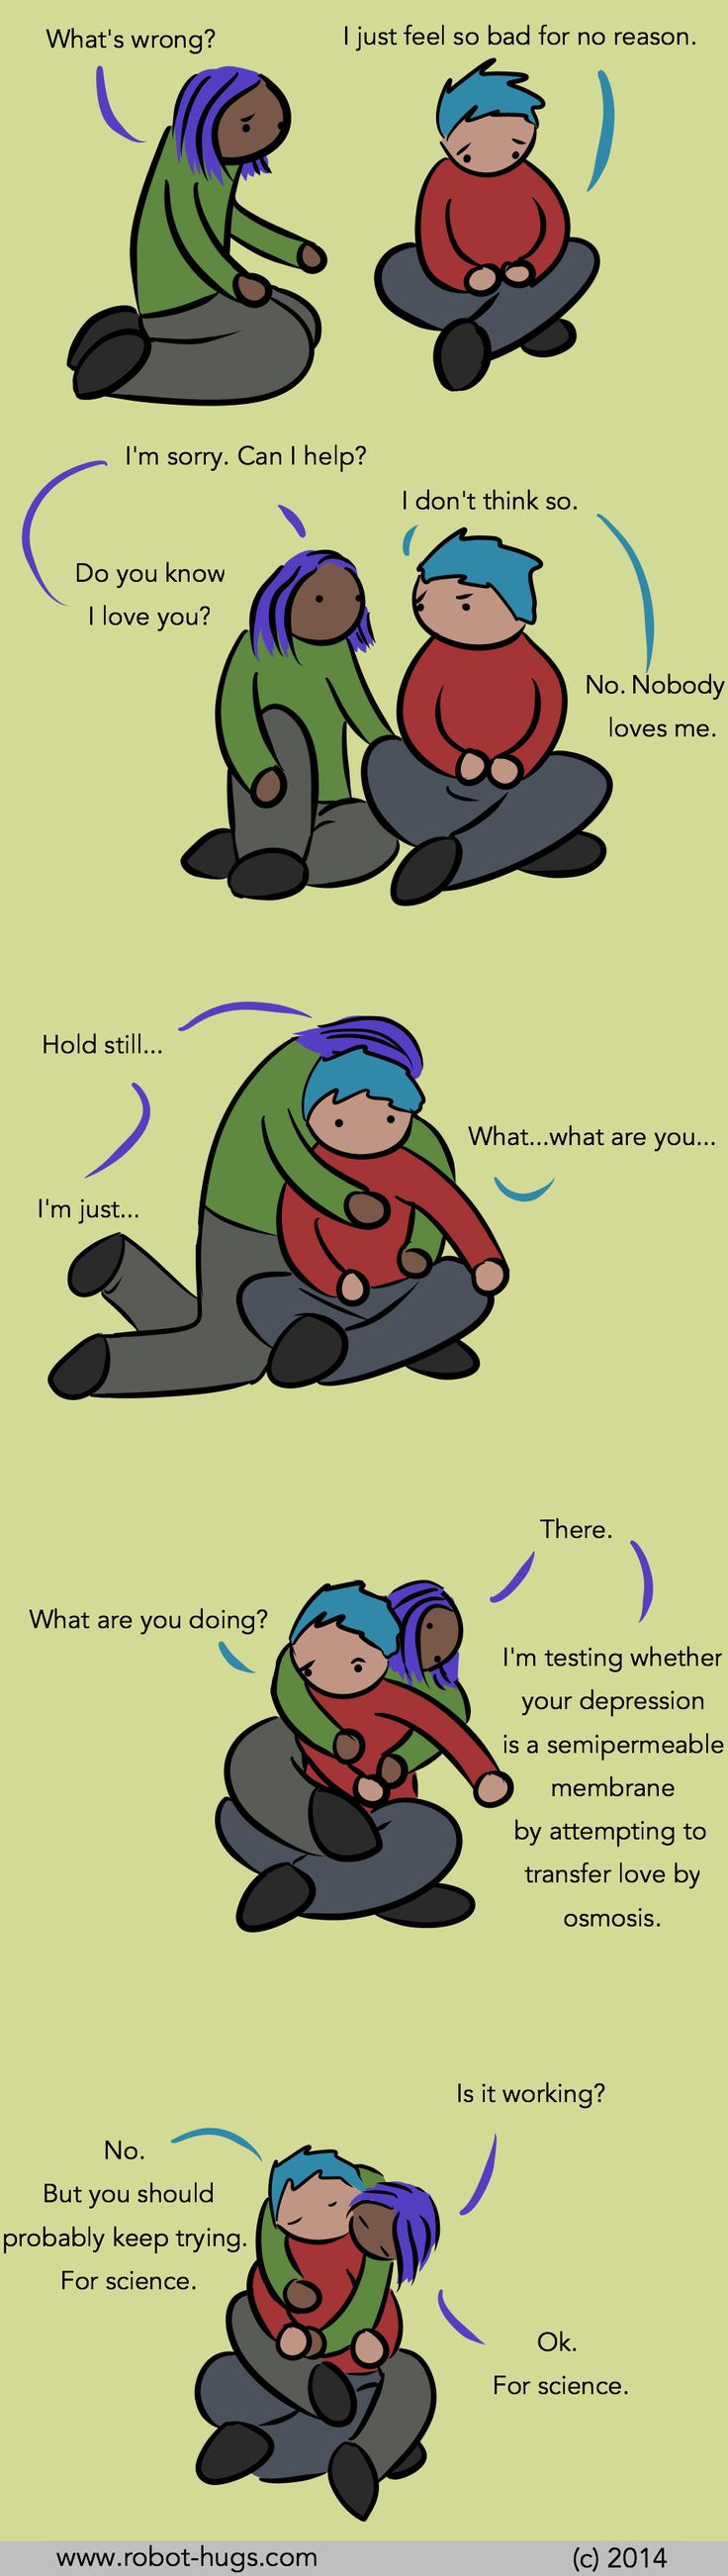 Robot Hugs: For Science (http://www.robot-hugs.com/for-science/) what I wish I could have done... Now it's too late.